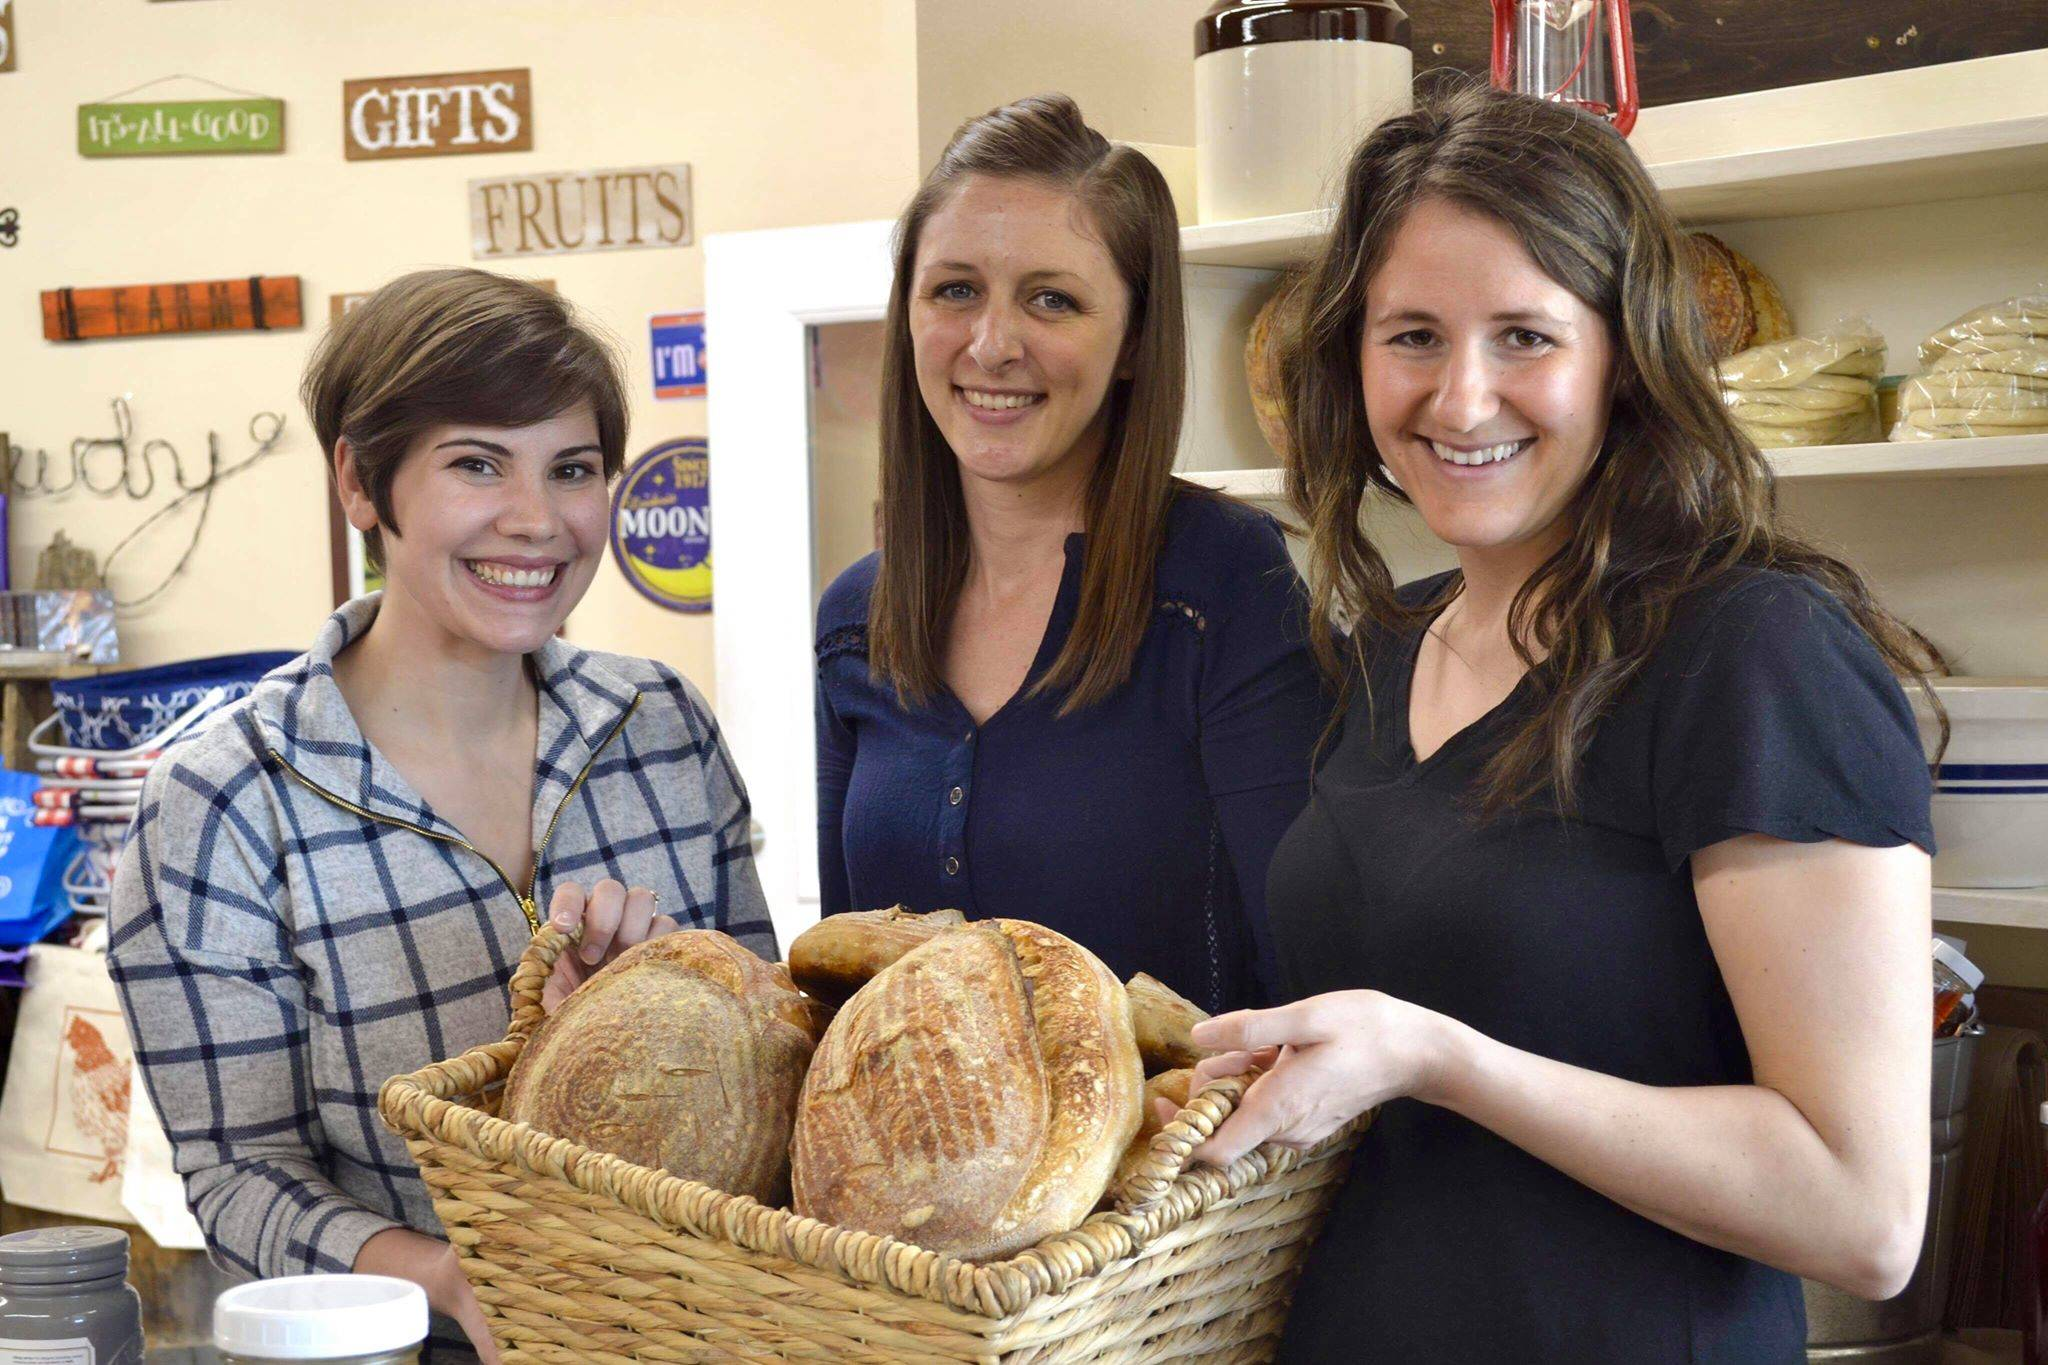 Local sourdough enthusiasts Lacy Ledahl, Maria Nolas and Elizabeth Cox taught a class at Maggie's General Store about the benefits and baking opportunities of sourdough, Saturday, April 13, 2019, in Kenai, Alaska. (Photo by Victoria Petersen/Peninsula Clarion)